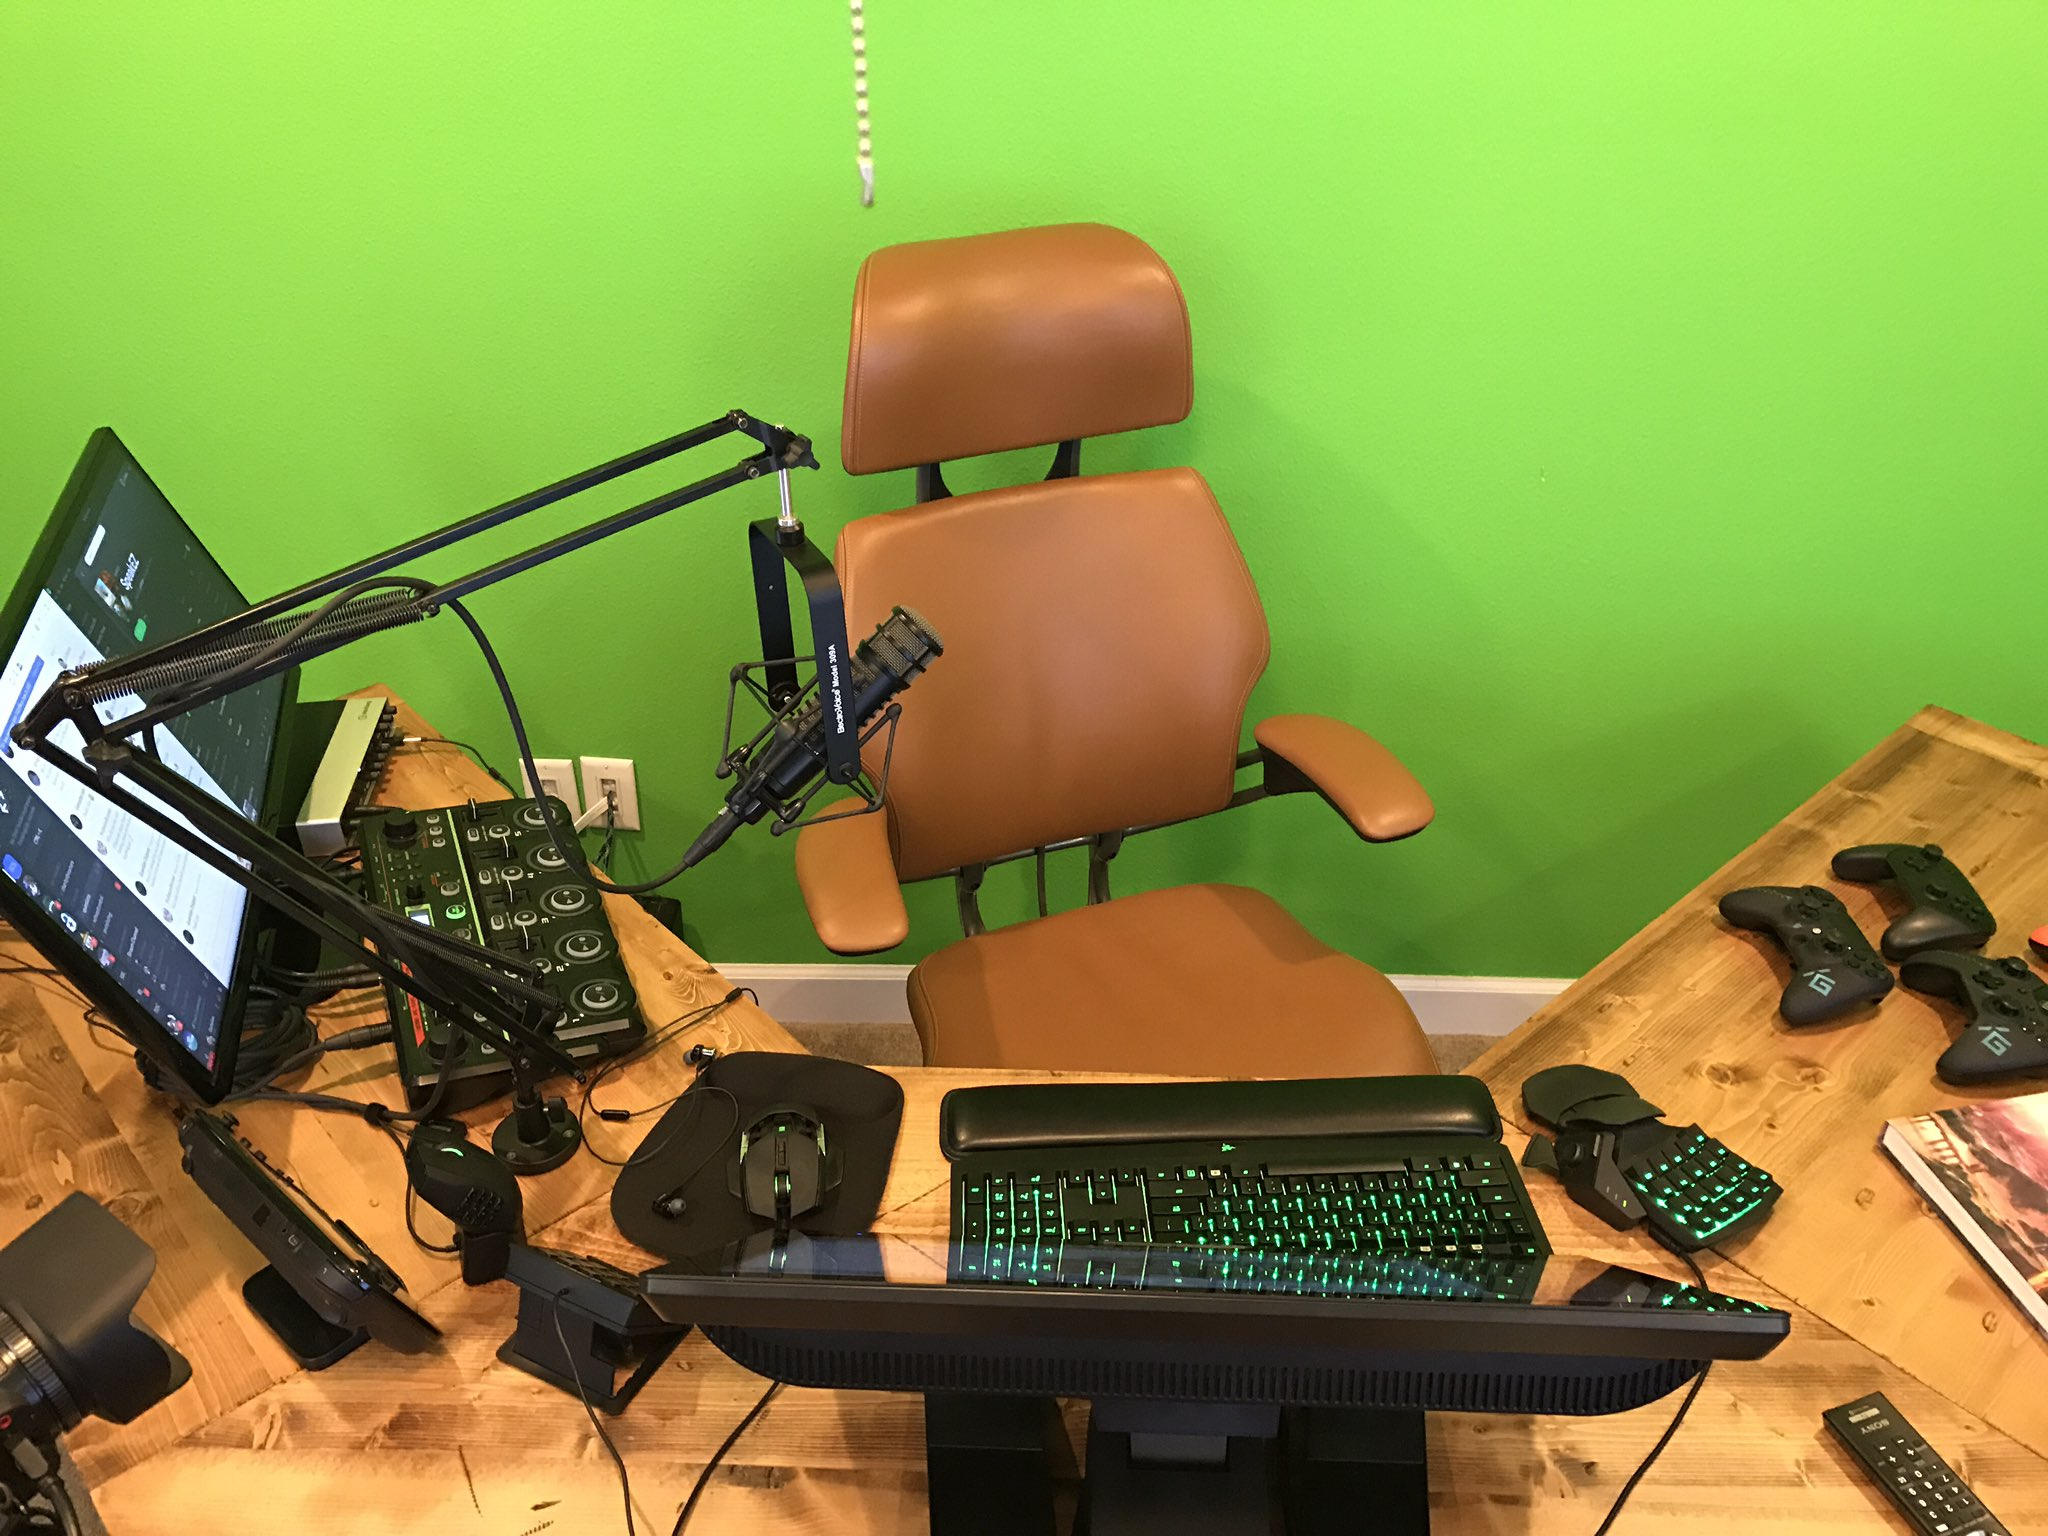 Gothalion  Live in a couple hours. New command station is up and running https://t.co/nYW6qY0yEW  6/23/17, 6:12 AM